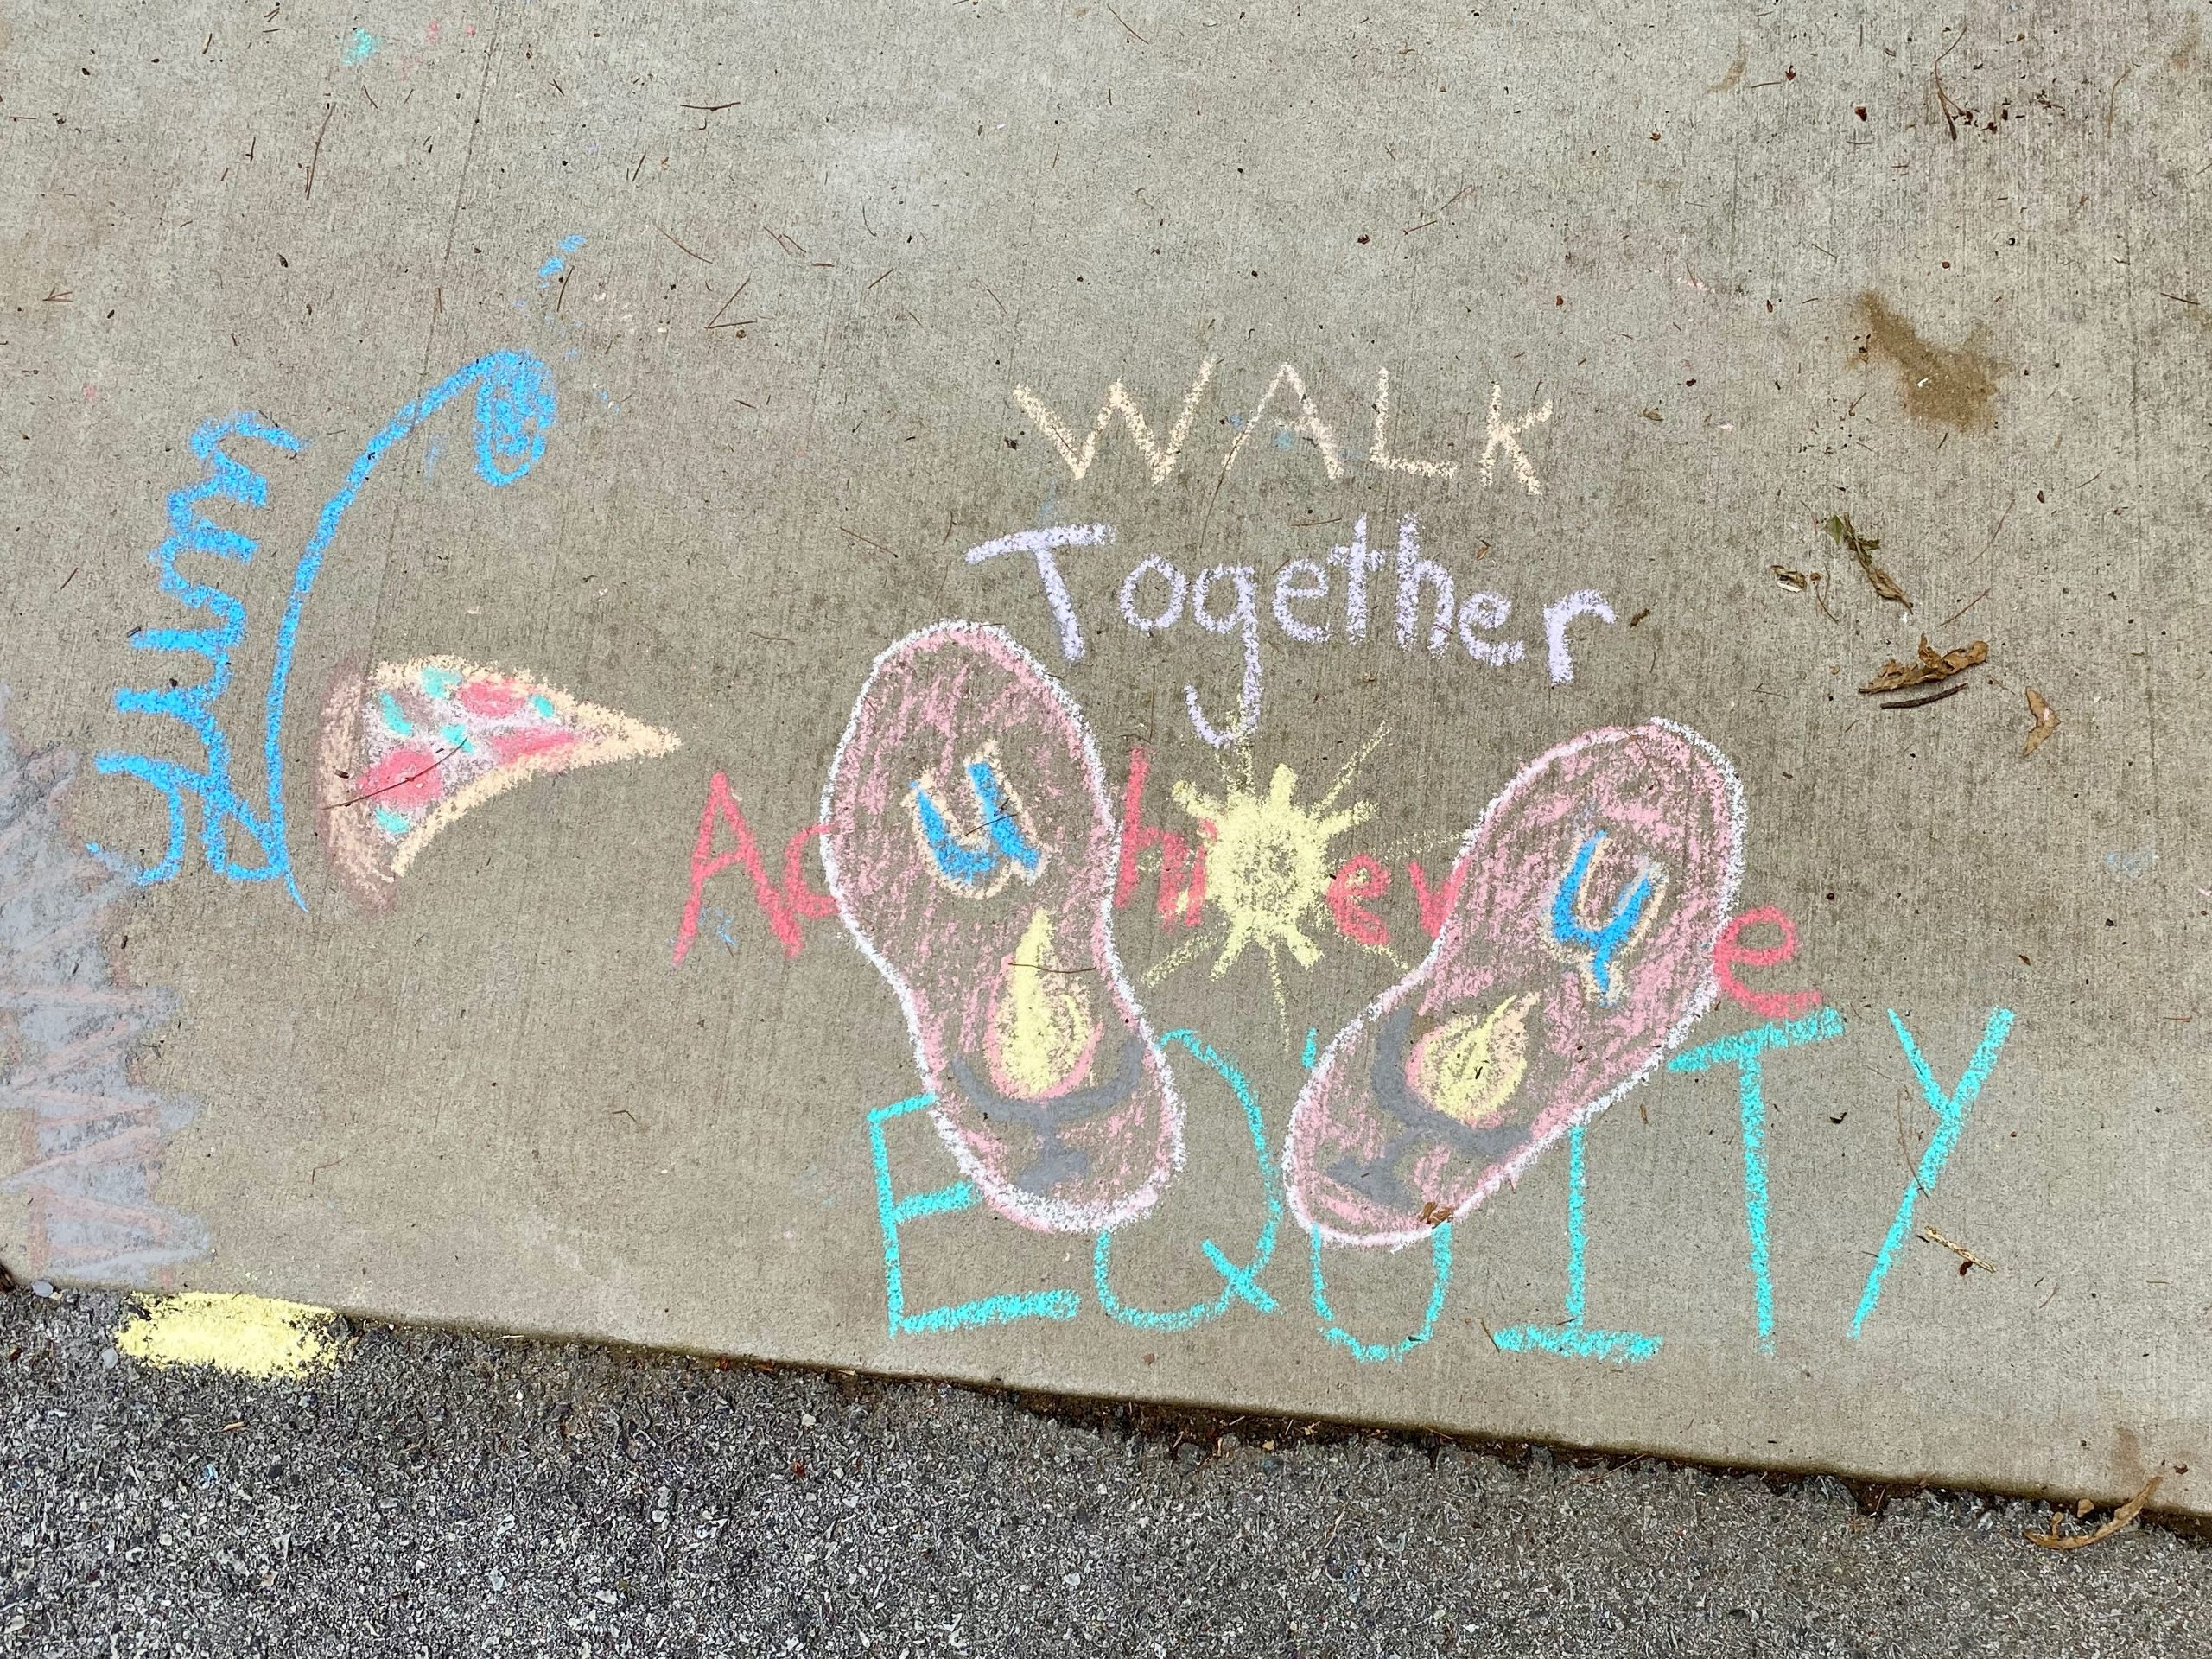 """Image of pizza slice """"Yum"""" and footprints with the words """"Walk Together Achieve Equity"""""""